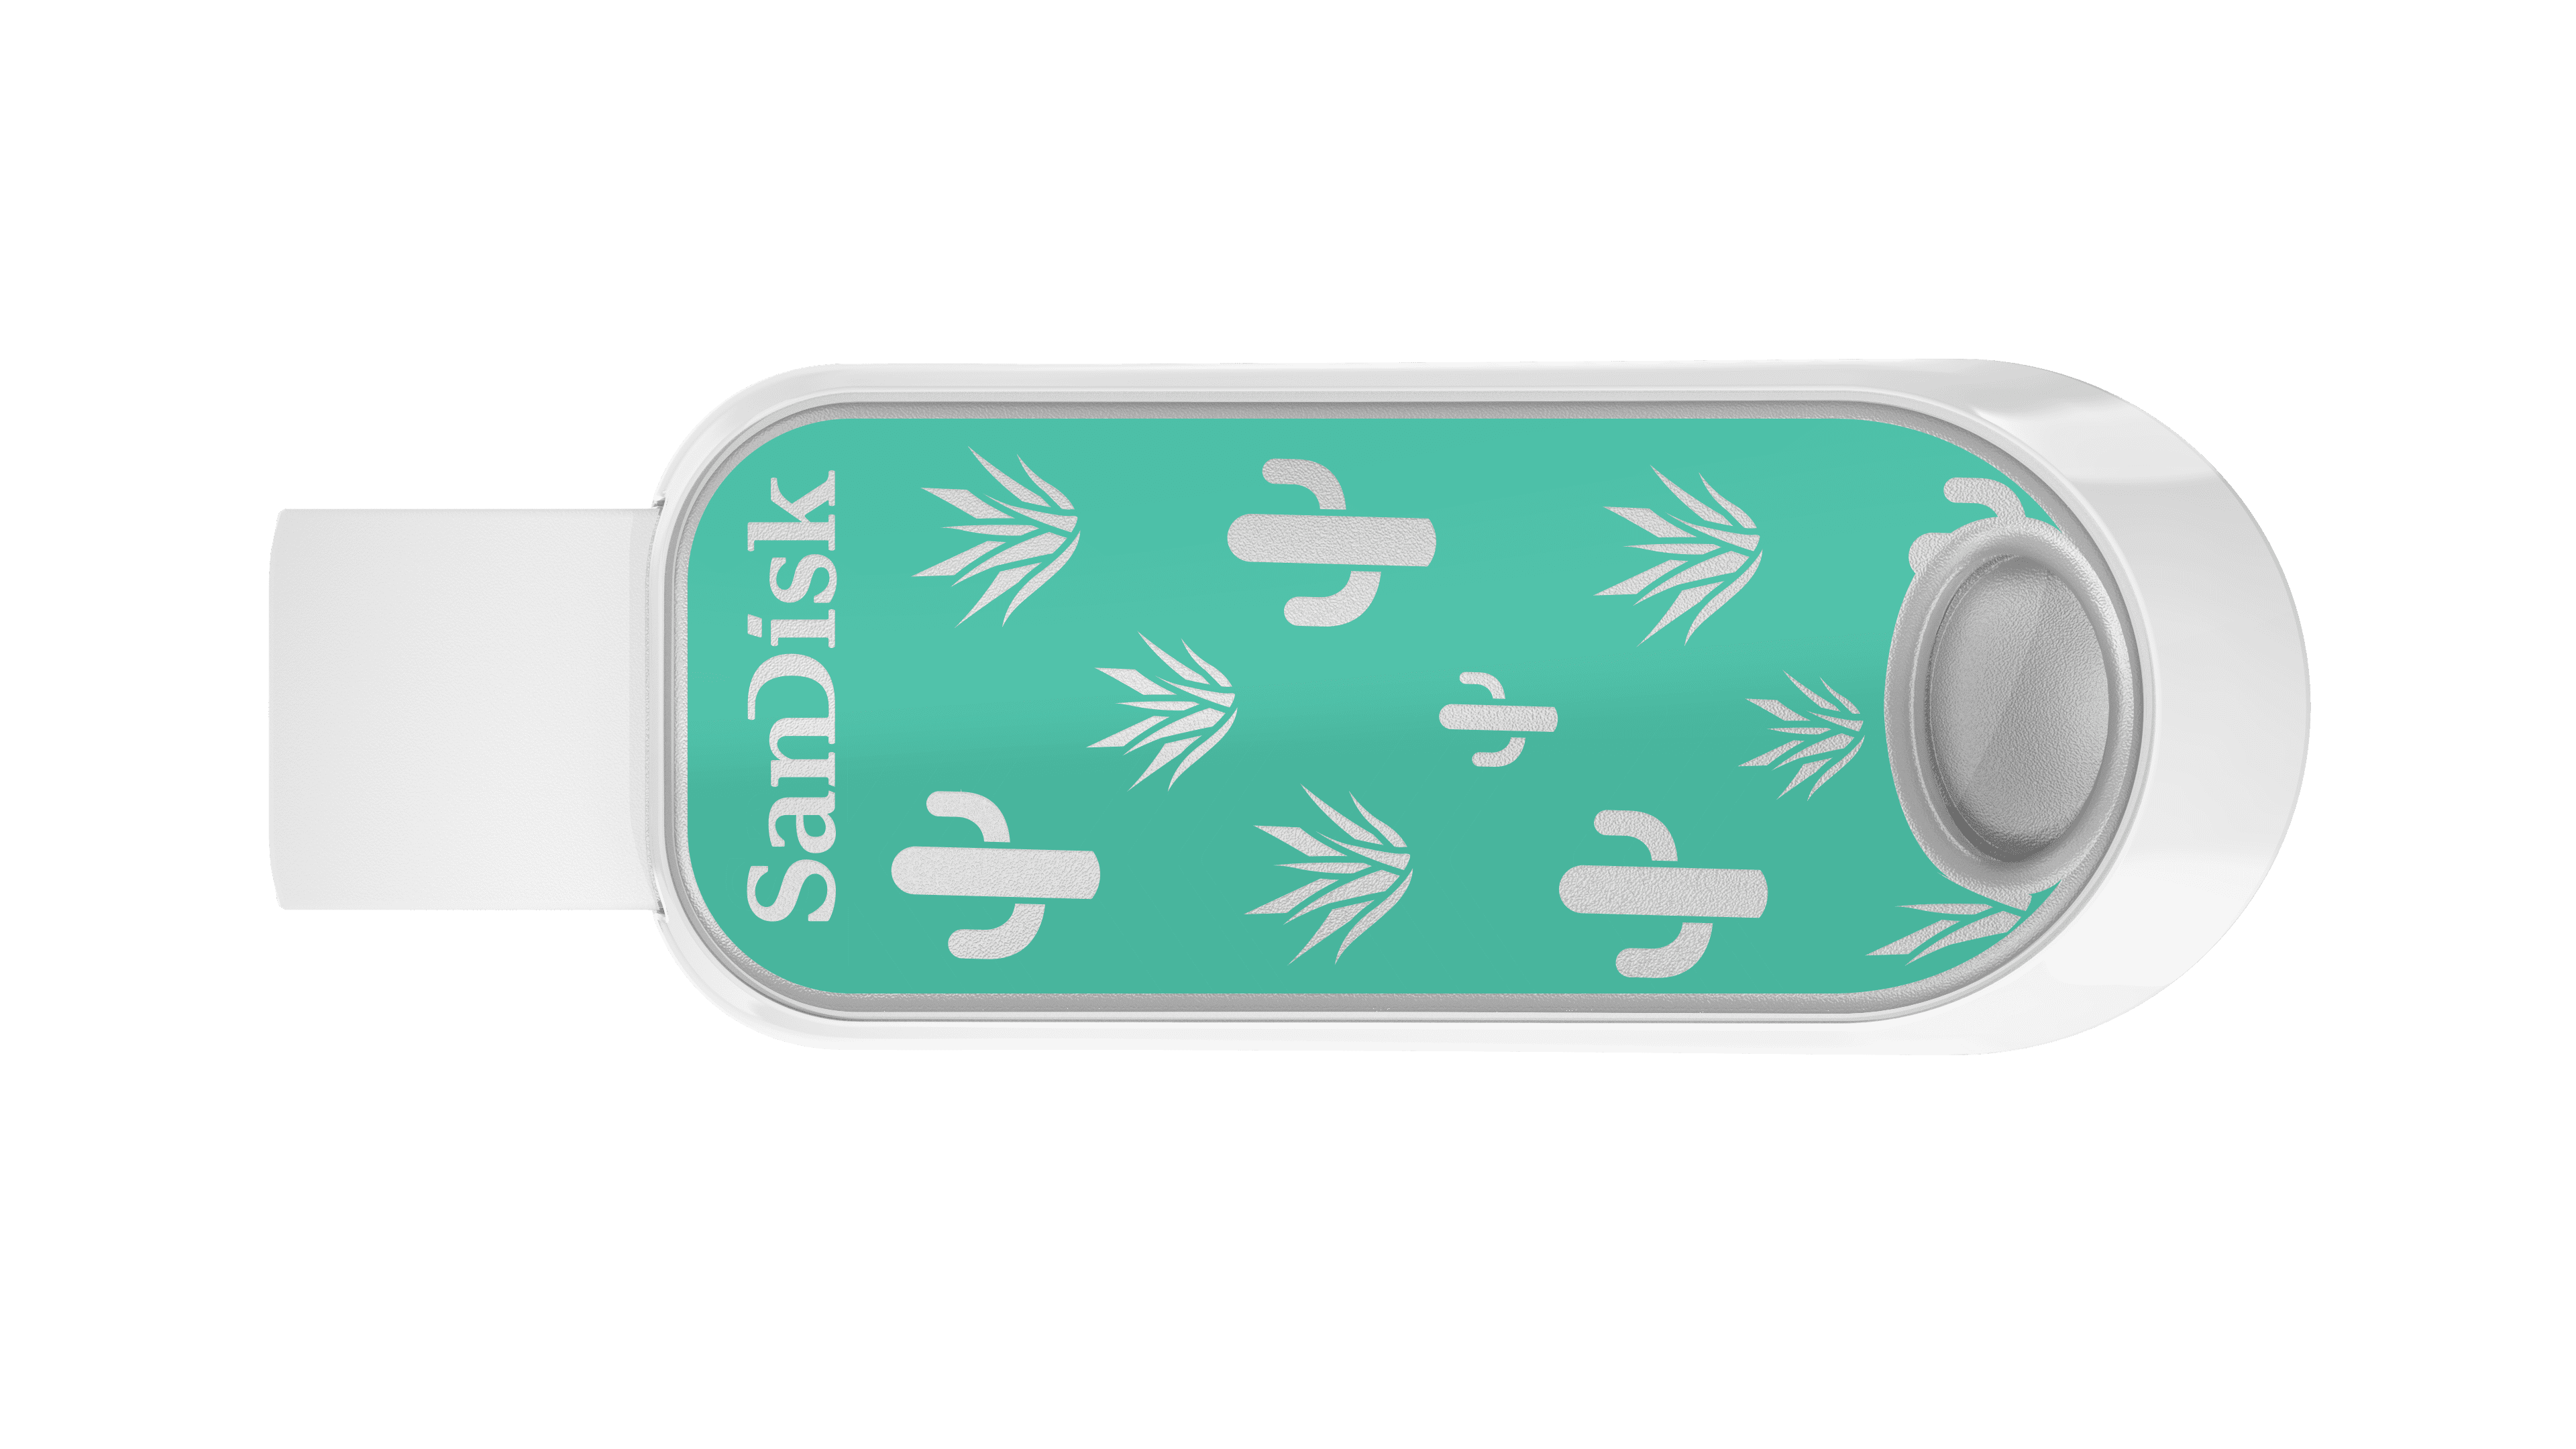 SanDisk 32GB Cruzer Snap USB 2.0 Flash Drive with Green Cactus Print - SDCZ62-032G-AW4G